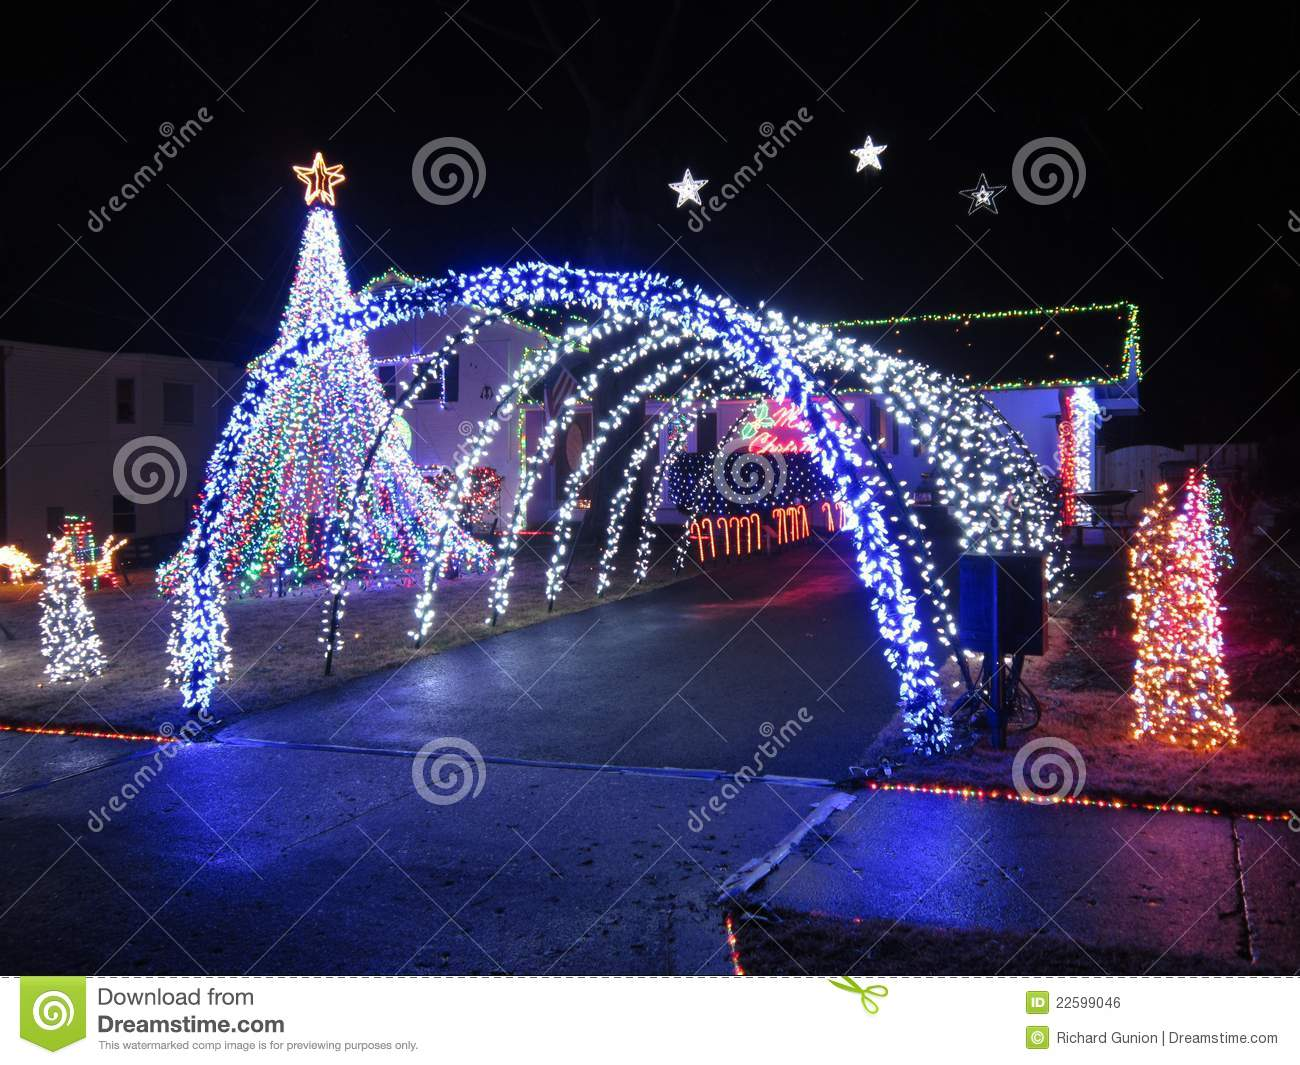 elaborate christmas decorations - Christmas Arch Decorations